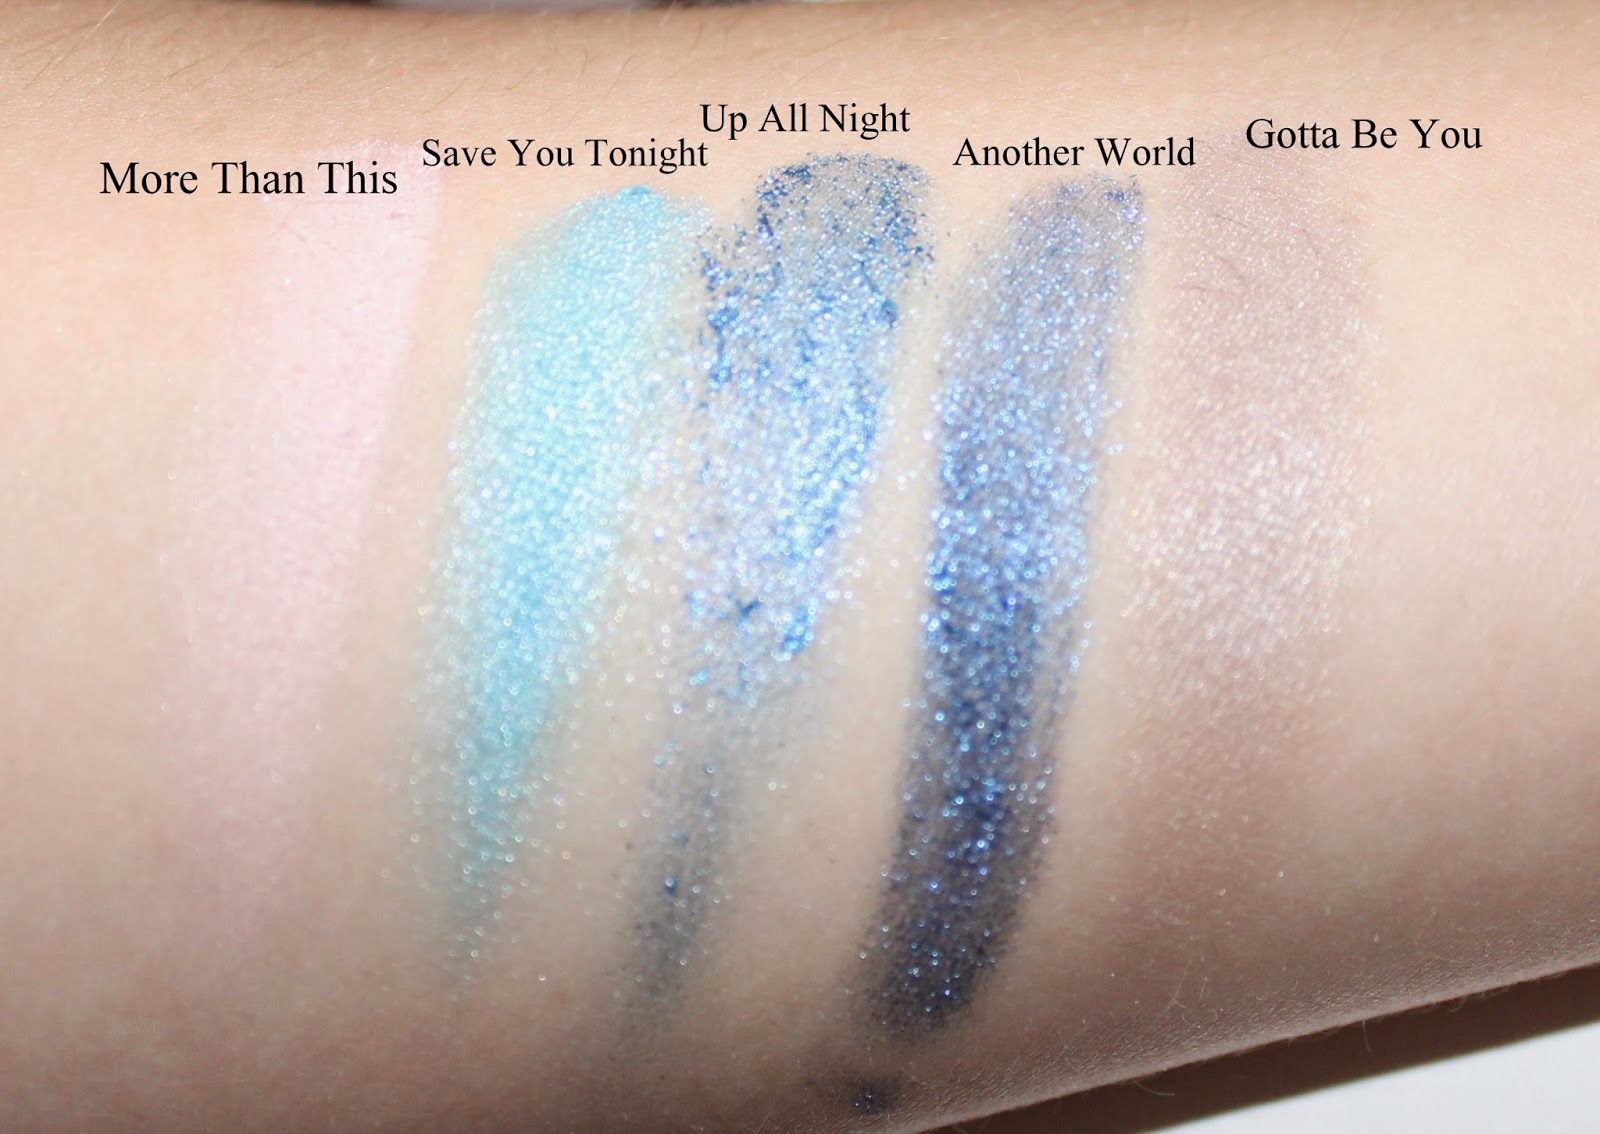 Make Up by One Direction Up All Night Eyeshadow Swatches